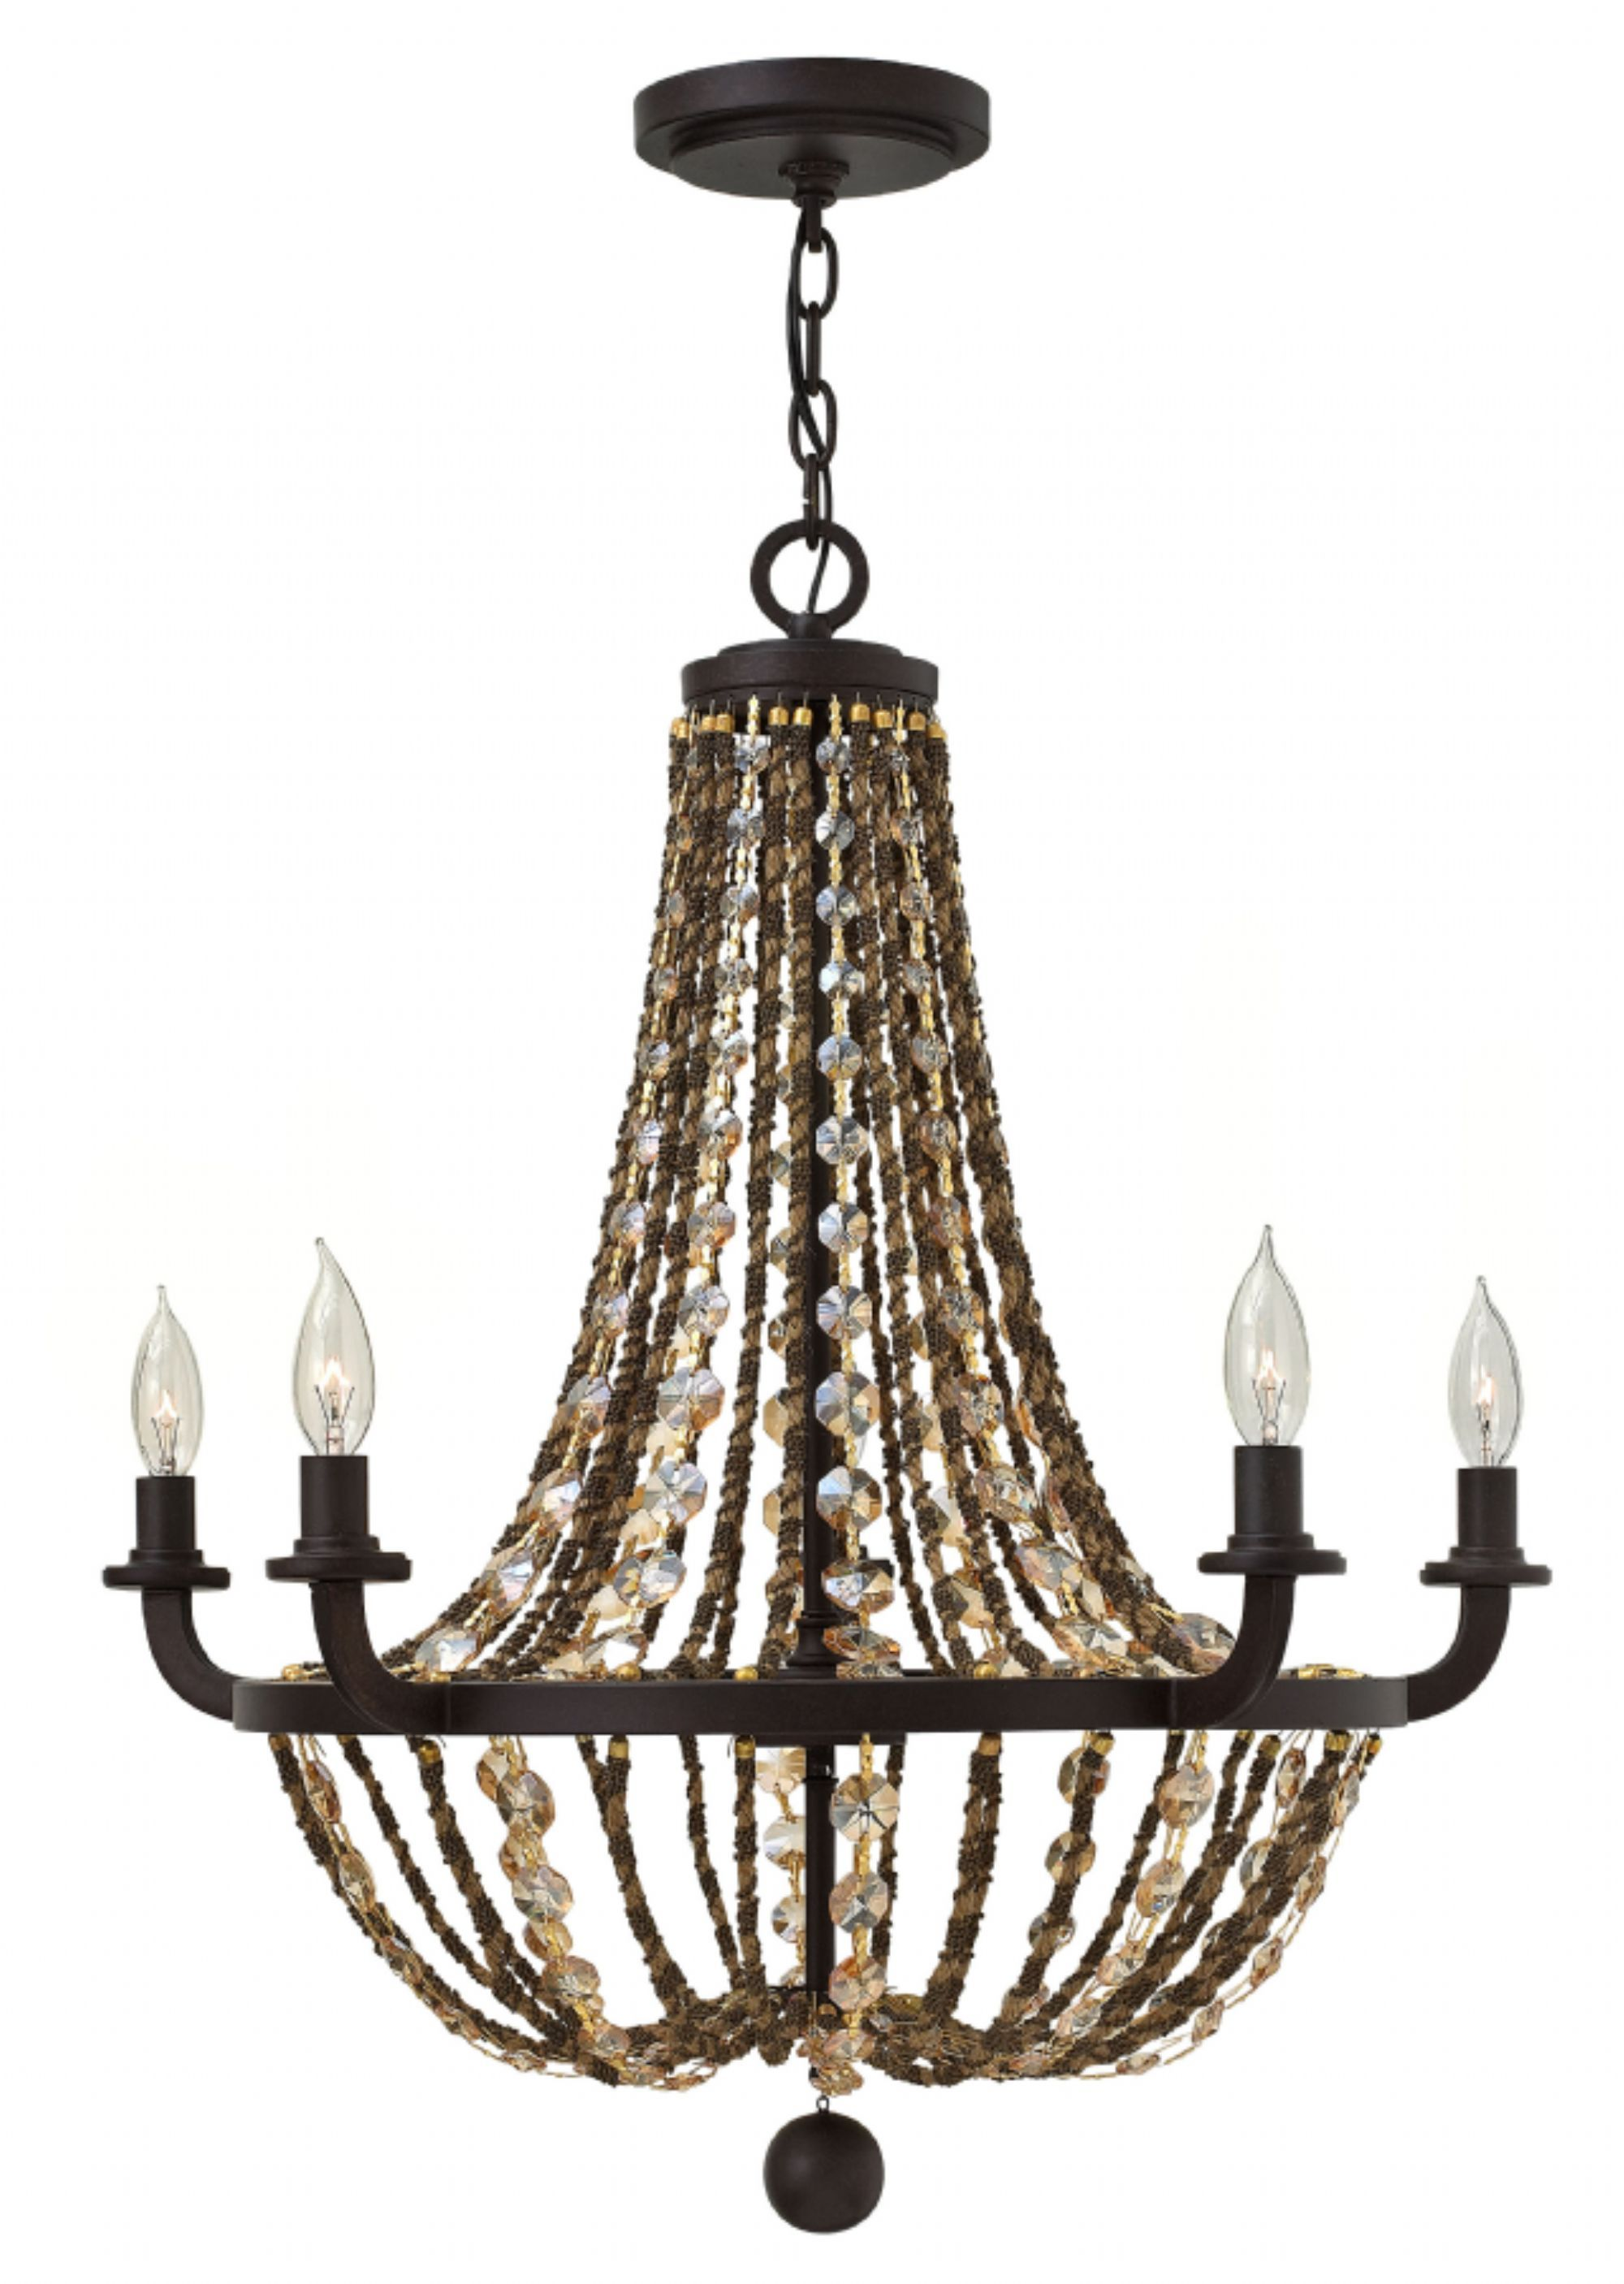 Hinkley Lighting carries many Vintage Bronze Hamlet Chandeliers